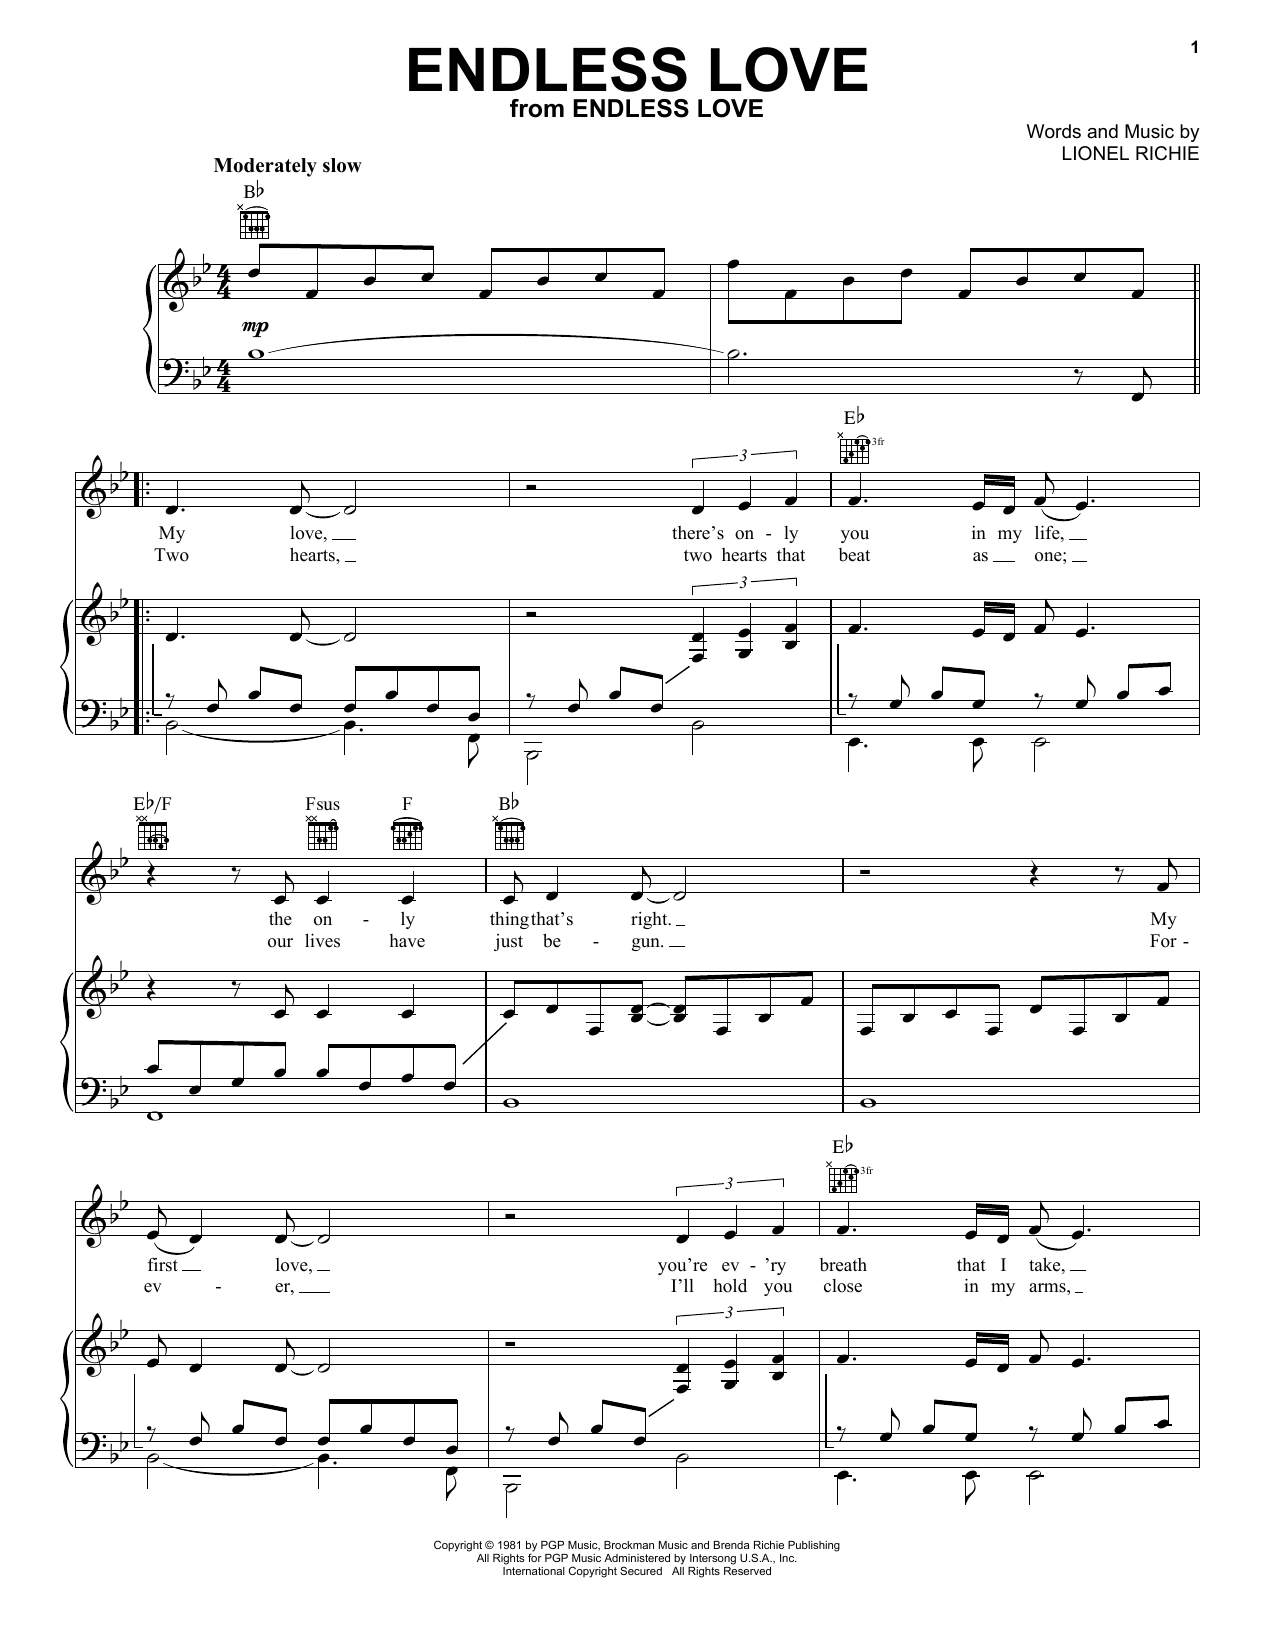 Lionel Richie & Diana Ross Endless Love sheet music notes and chords. Download Printable PDF.